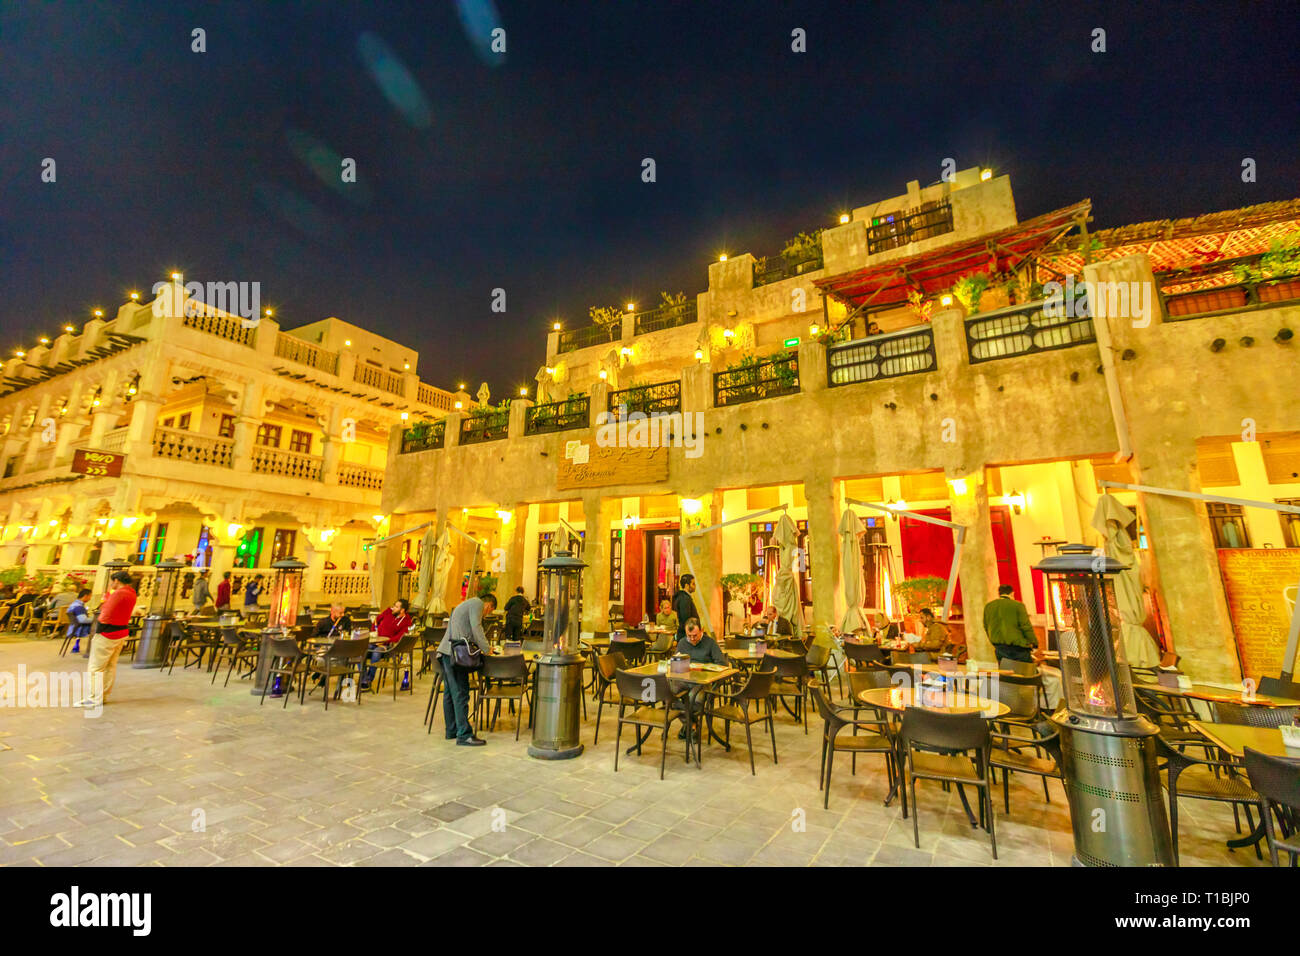 Doha, Qatar - February 17, 2019: historic buildings with traditional